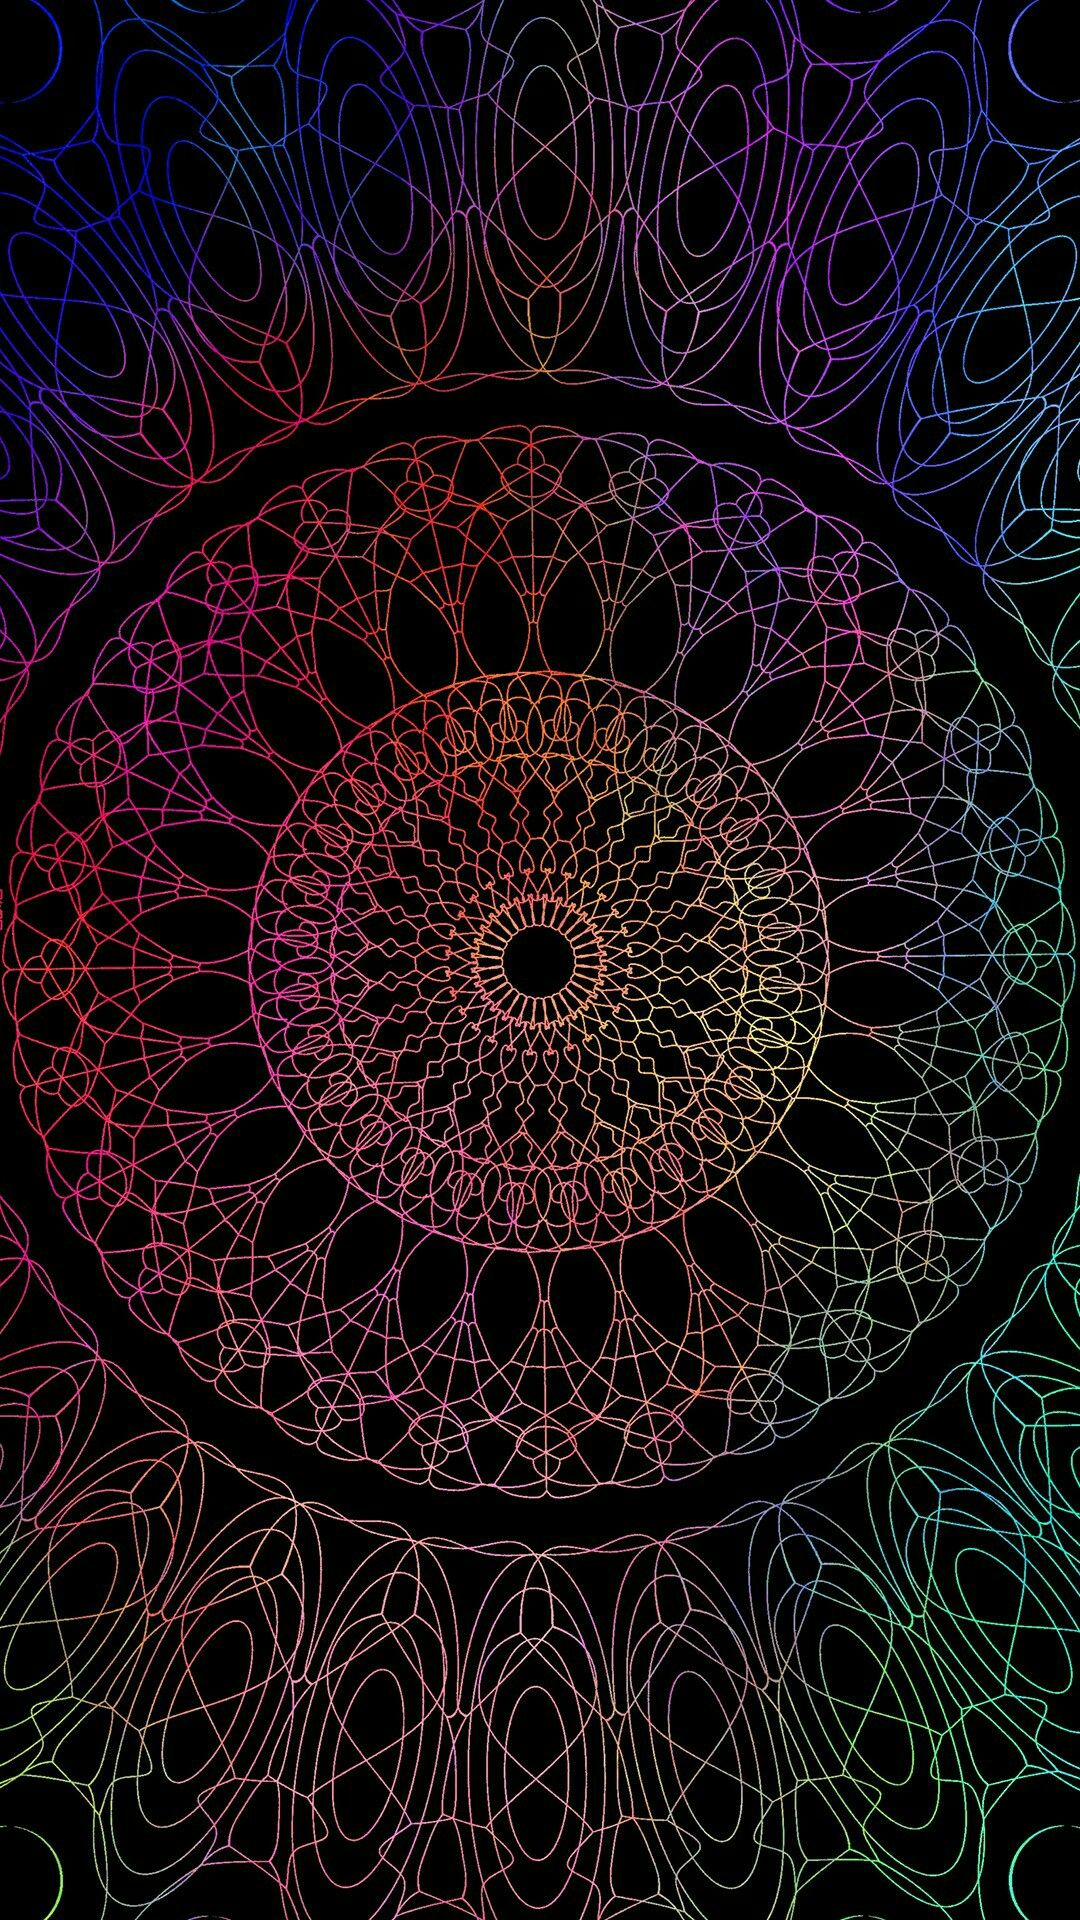 Wallpaper iphone mandala - Mandala Wallpaper Lockscreen